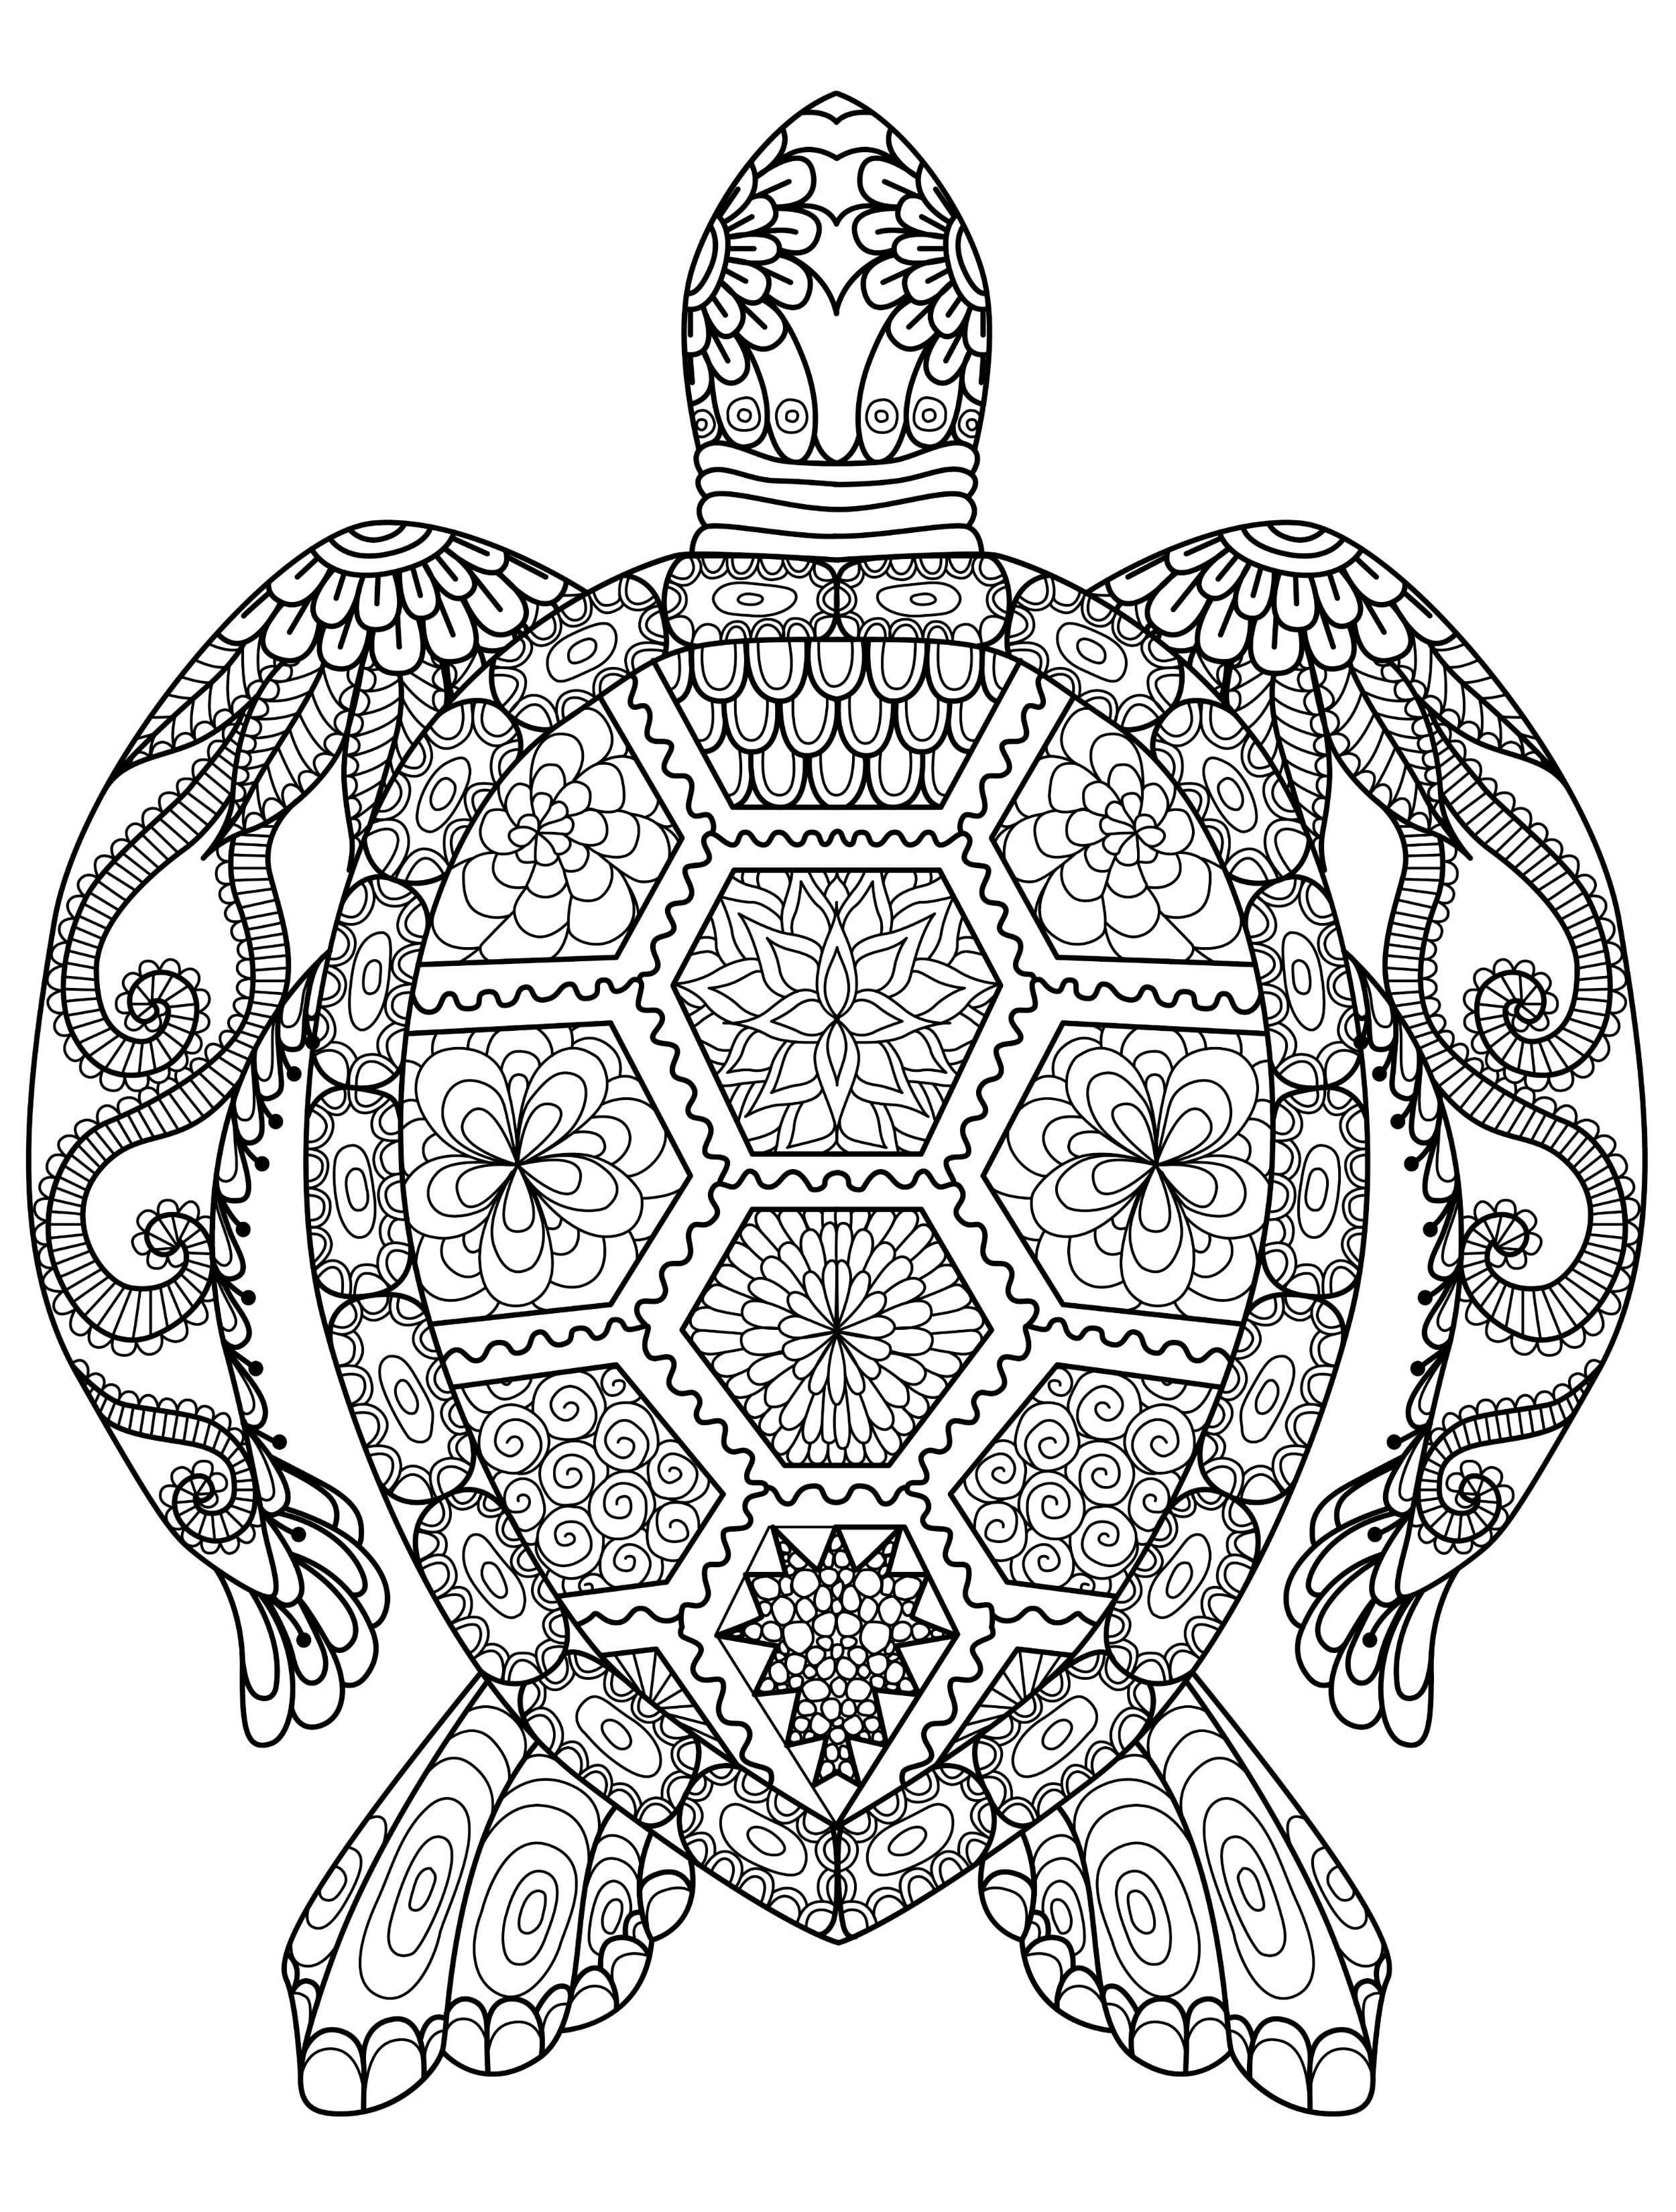 Animal Coloring Pages For Adults Best Kids With